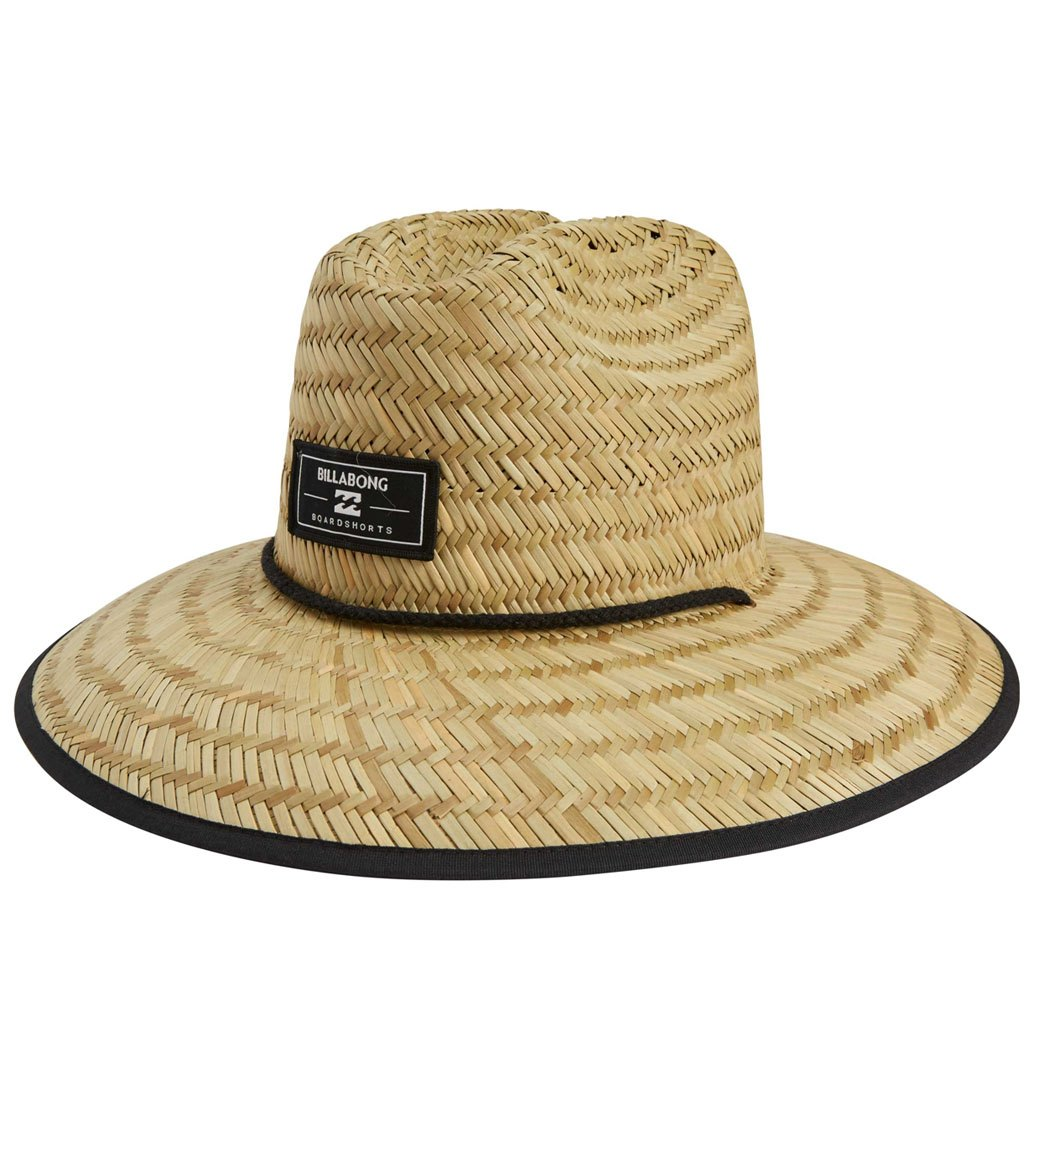 Billabong Mens Spectator Lifeguard Hat At Swimoutletcom